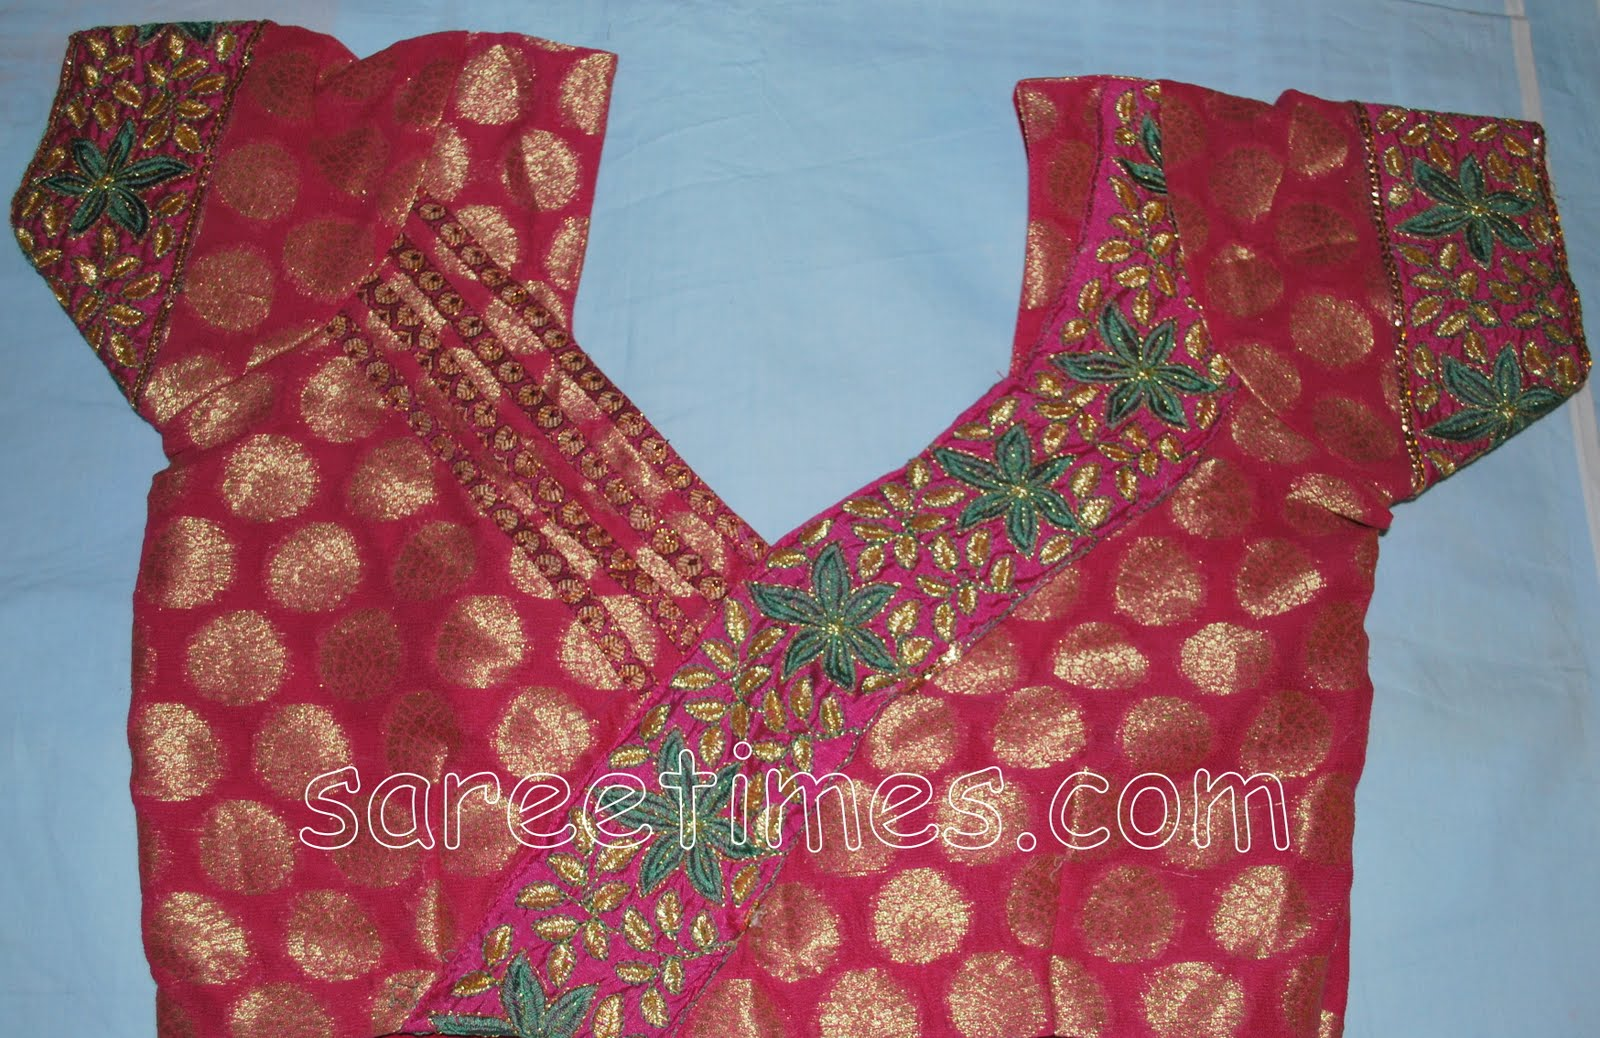 Pin Blouse Back Neck Designs For Saree Short Style Indian on Pinterest